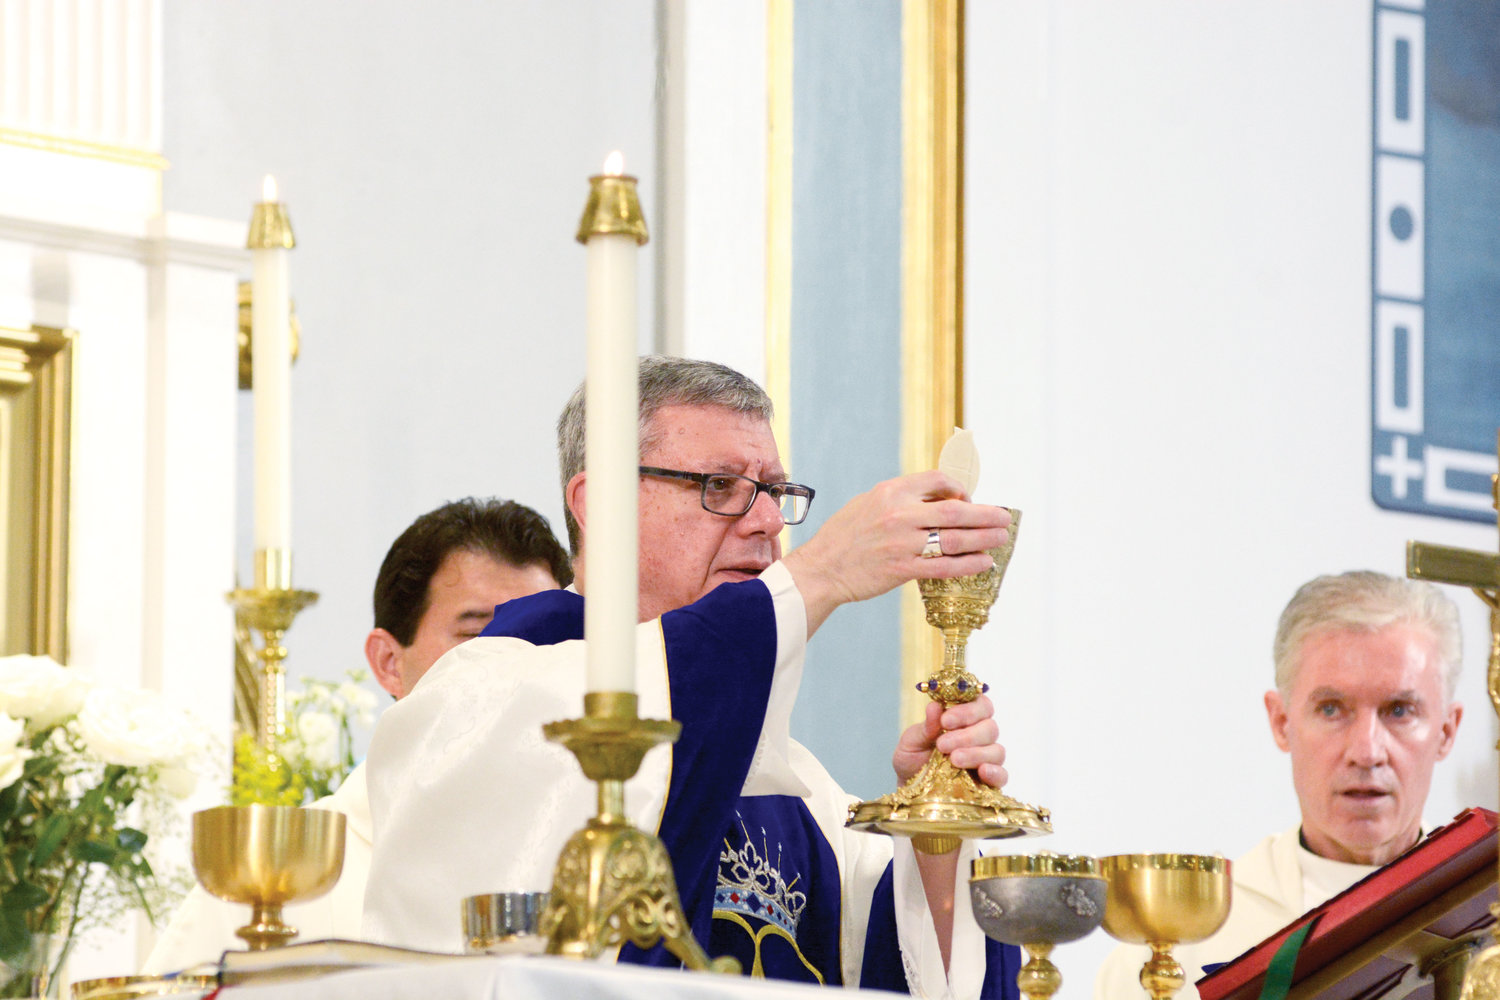 TABLE OF THE LORD—Auxiliary Bishop Gerardo J. Colacicco prays during the consecration of the Eucharist at the Vigil Mass for the Feast of the Assumption of the Blessed Virgin Mary Aug.14 at Assumption Church in Peekskill.